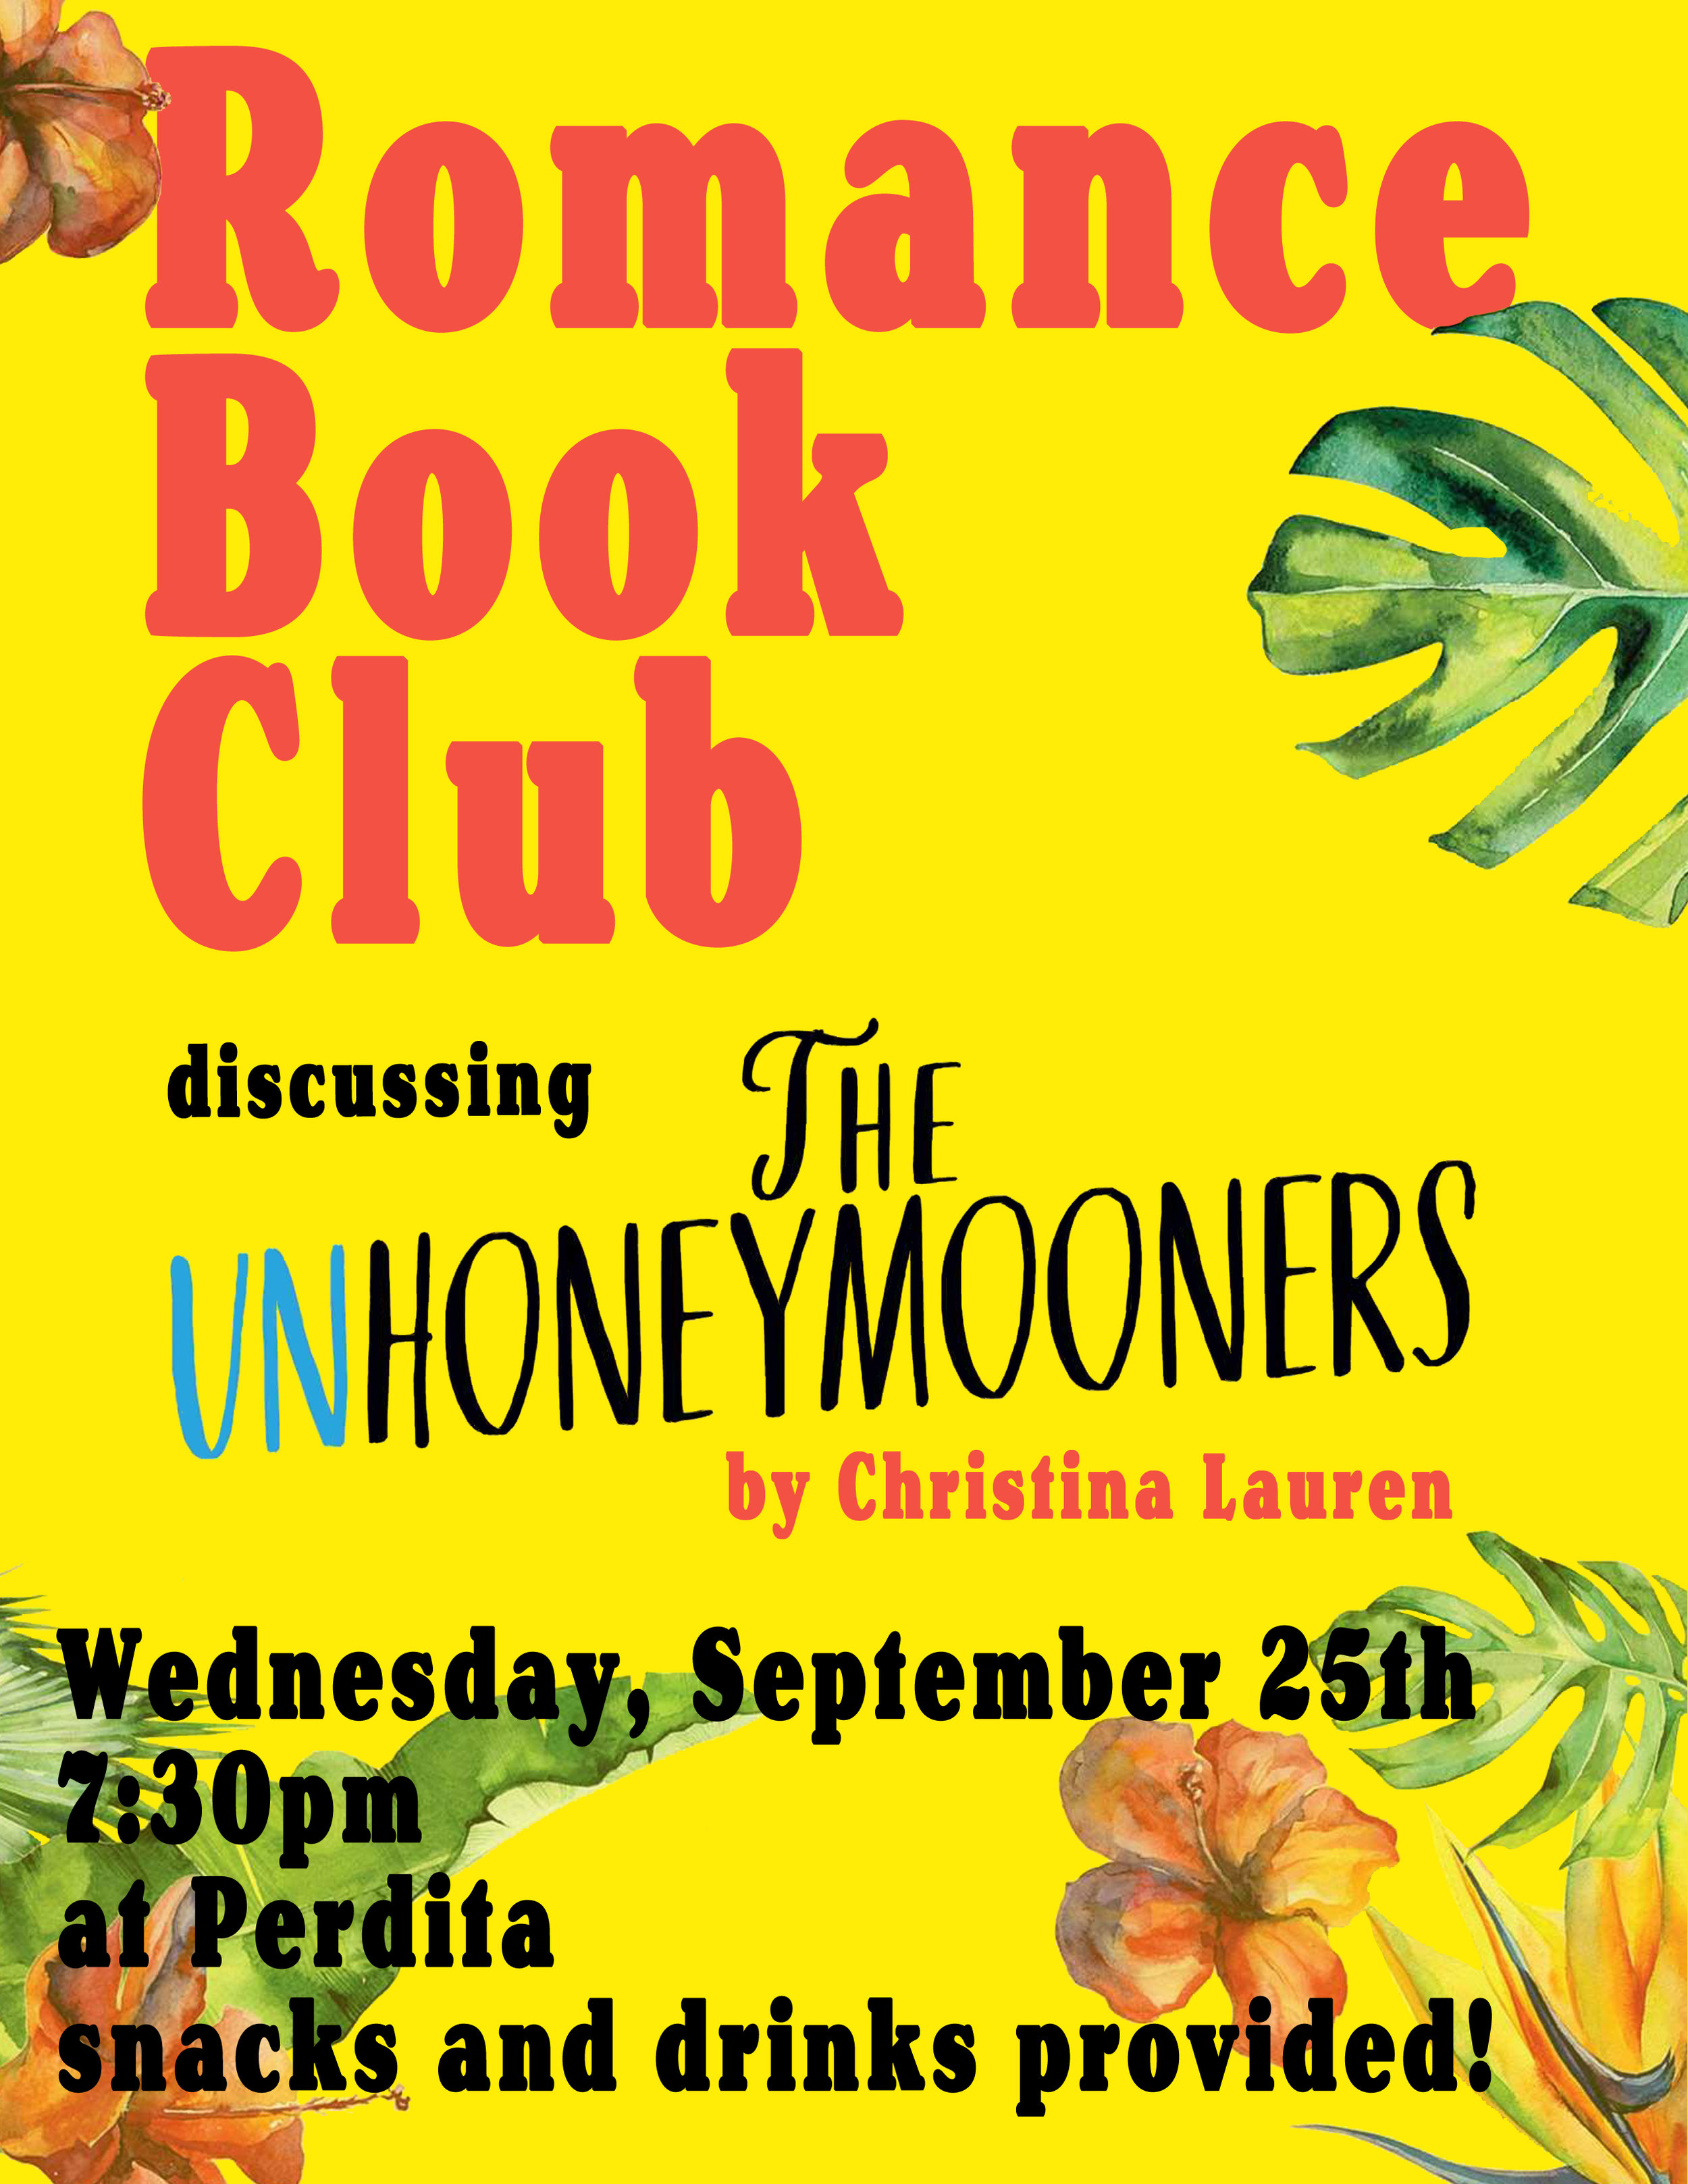 romance book club unhoneymooners september 2019.jpg